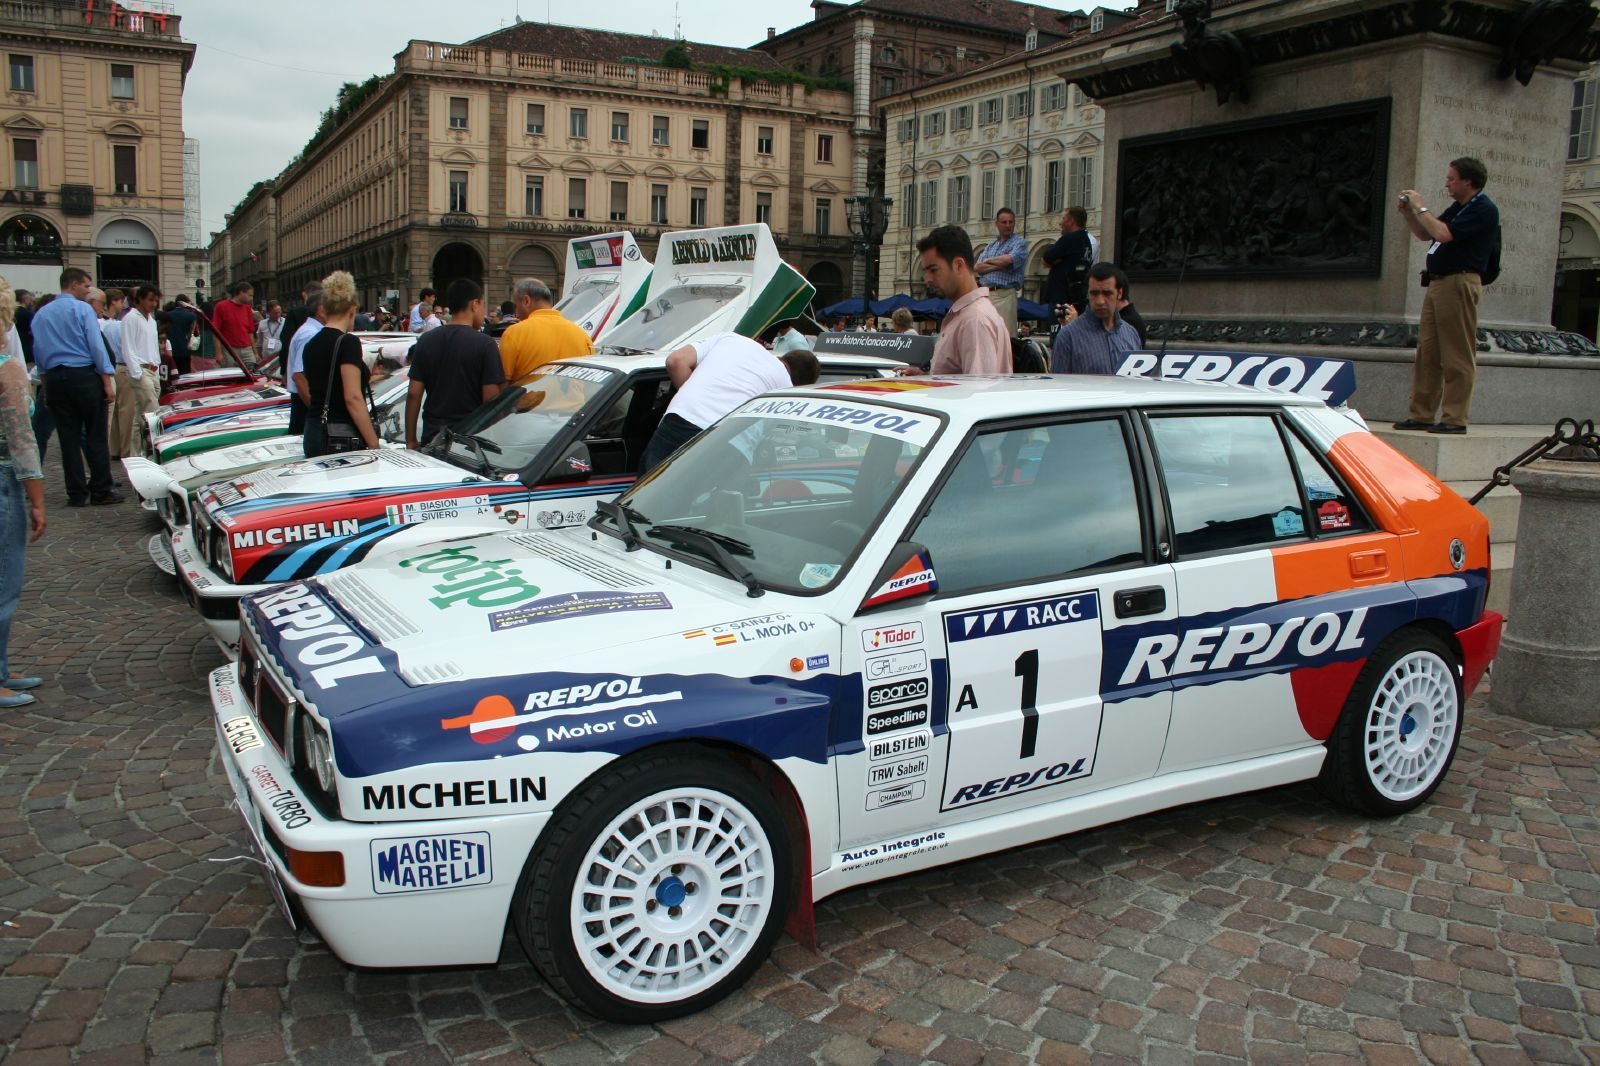 93 Lancia Delta HF Integrale Jolly Club Edition | Love for cars ...